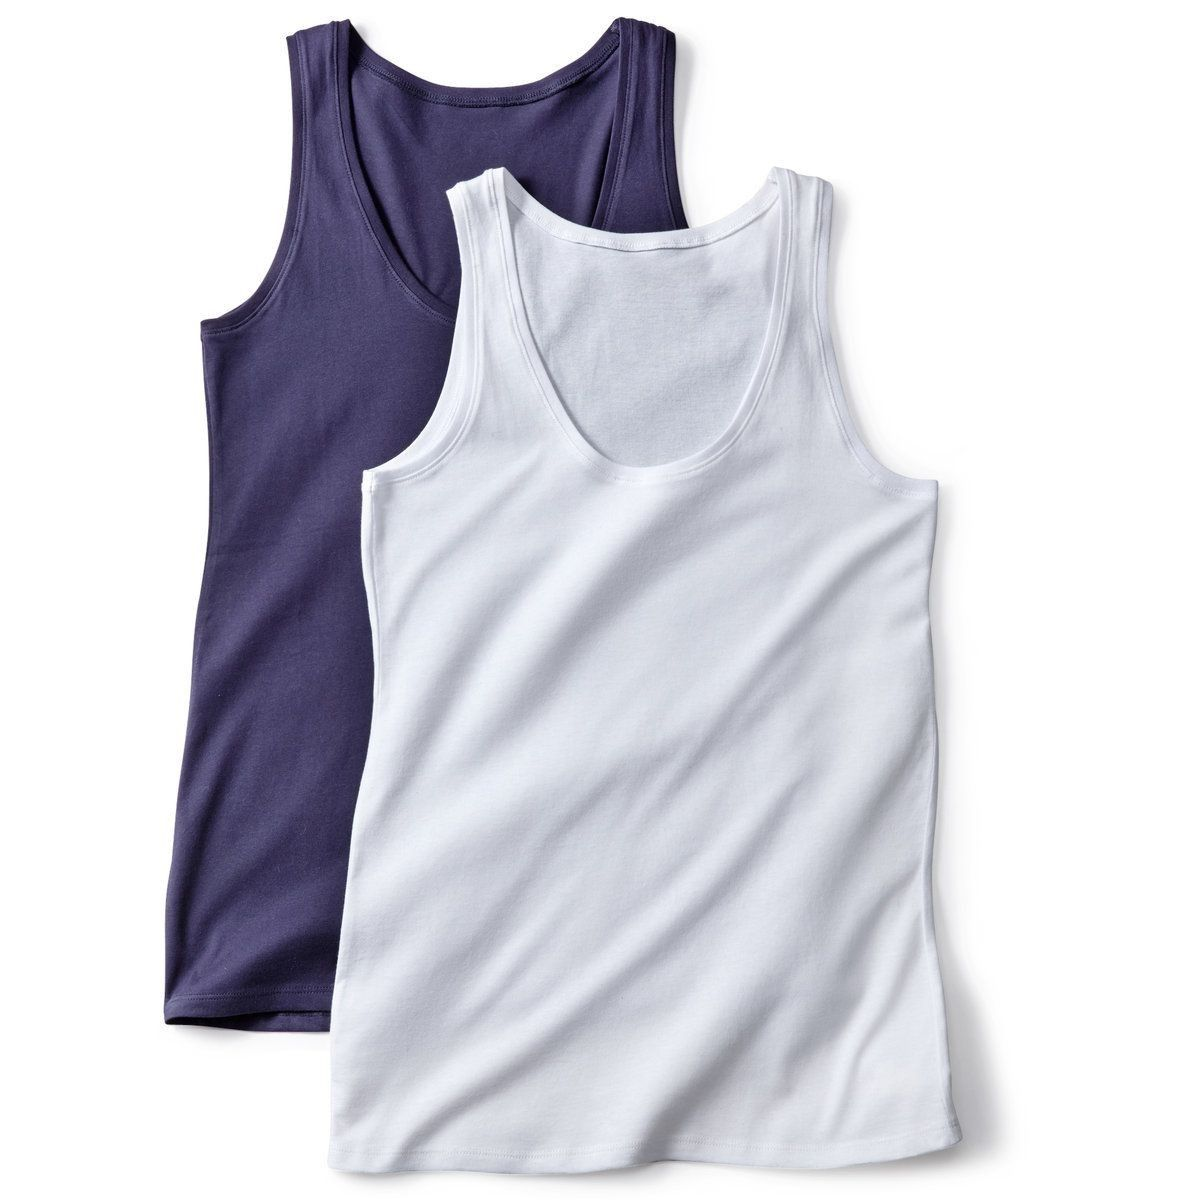 White And Marine Pack Of 2 Tank Tops - La Redoute